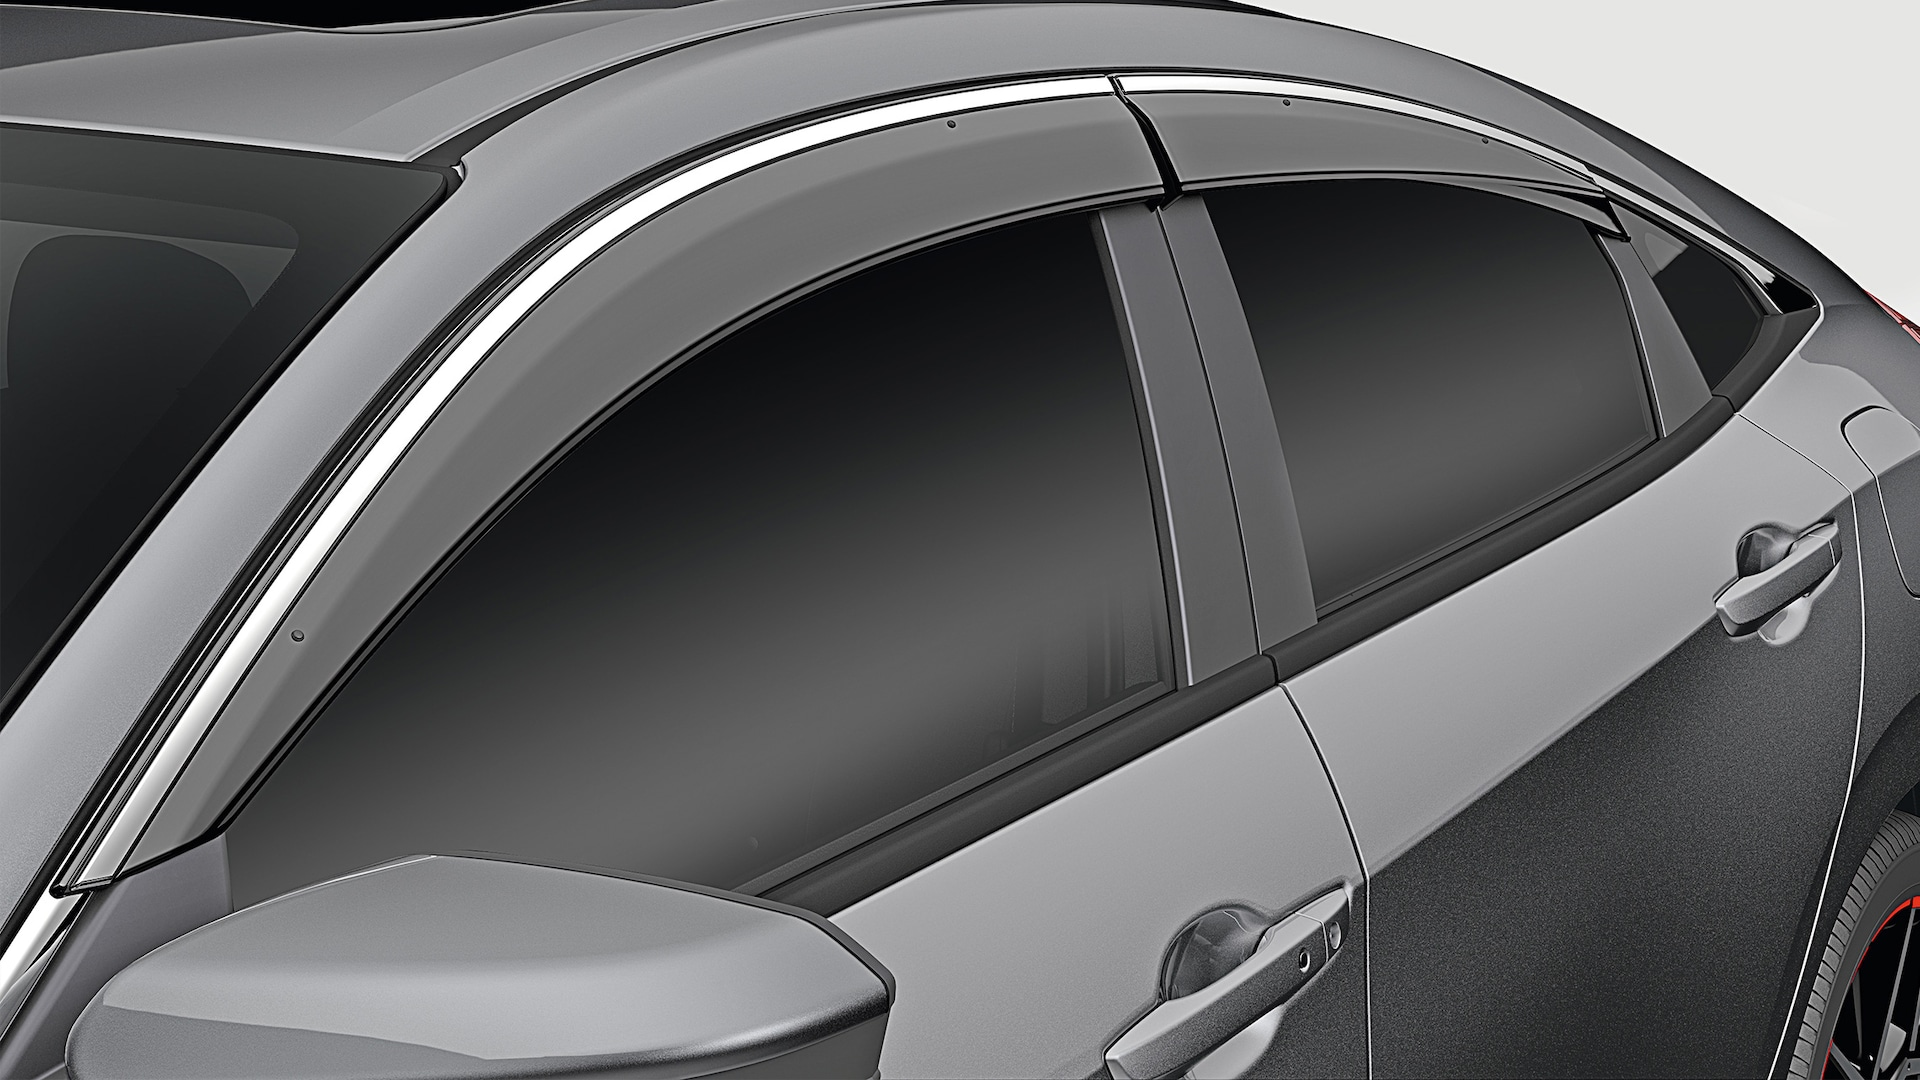 Door-visor detail on the 2021 Honda Civic Sedan in Modern Steel Metallic.